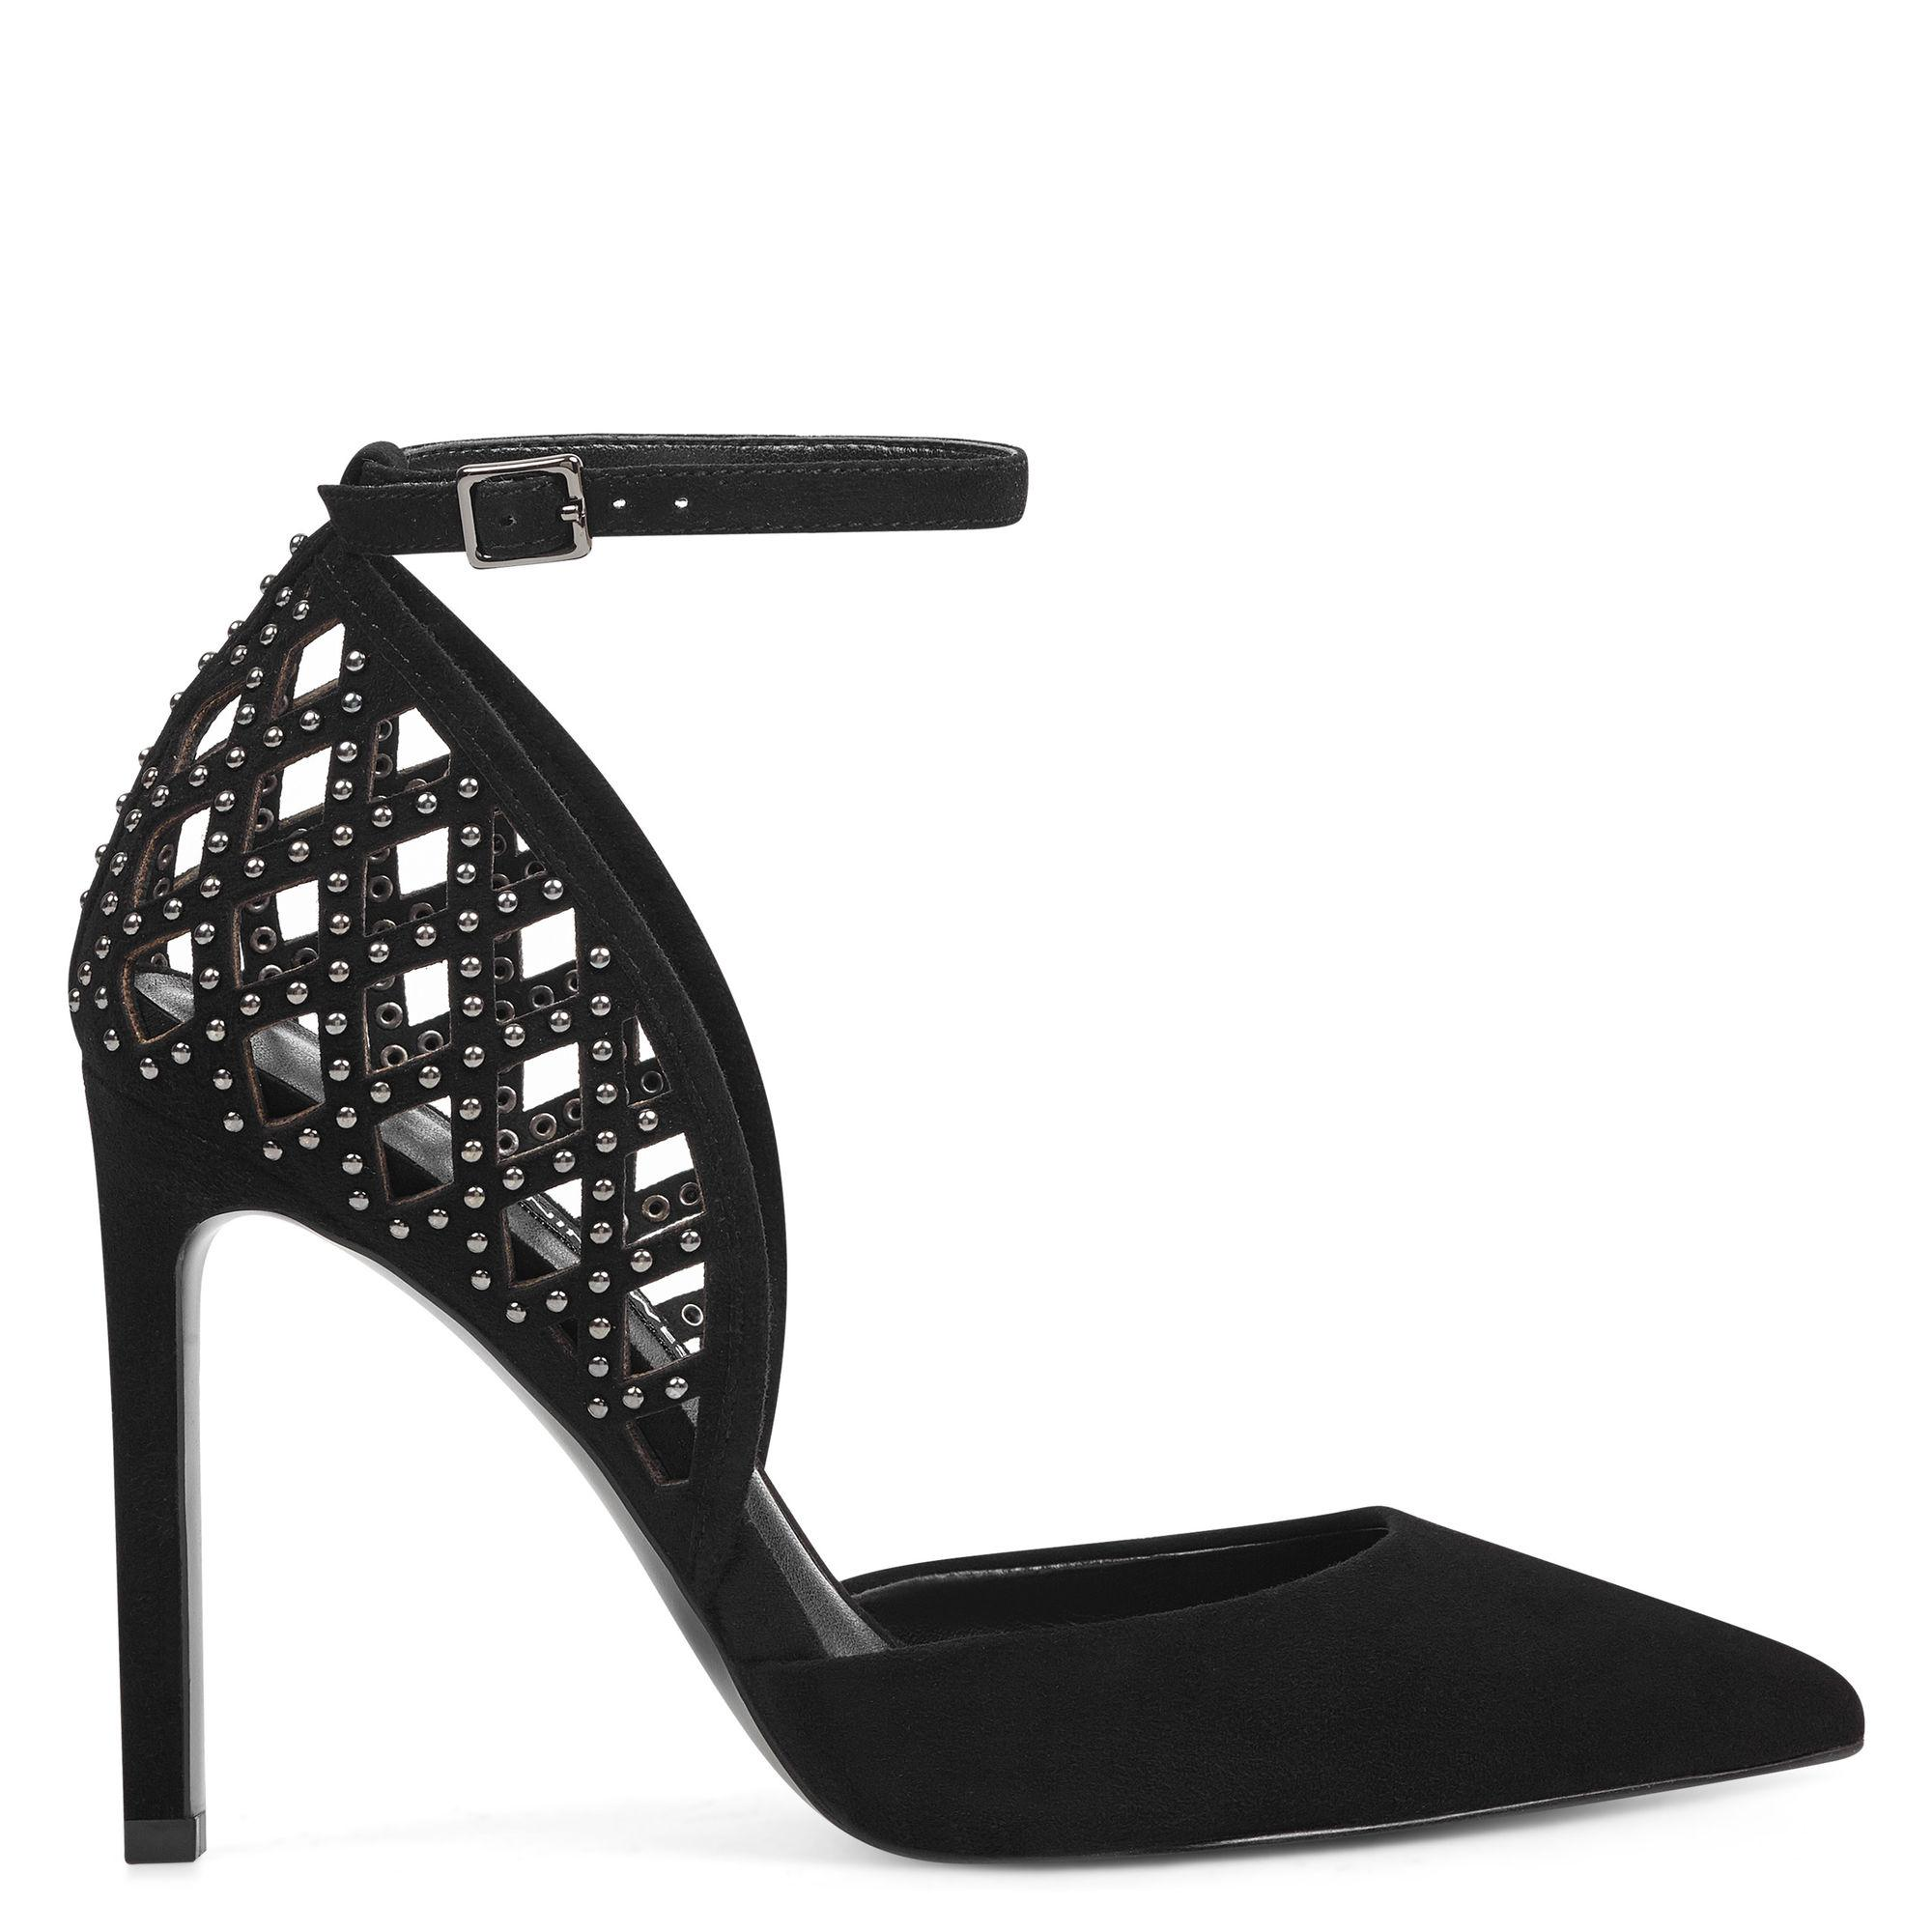 Lyst - Nine West Thefinest Pointy Toe Pumps in Black